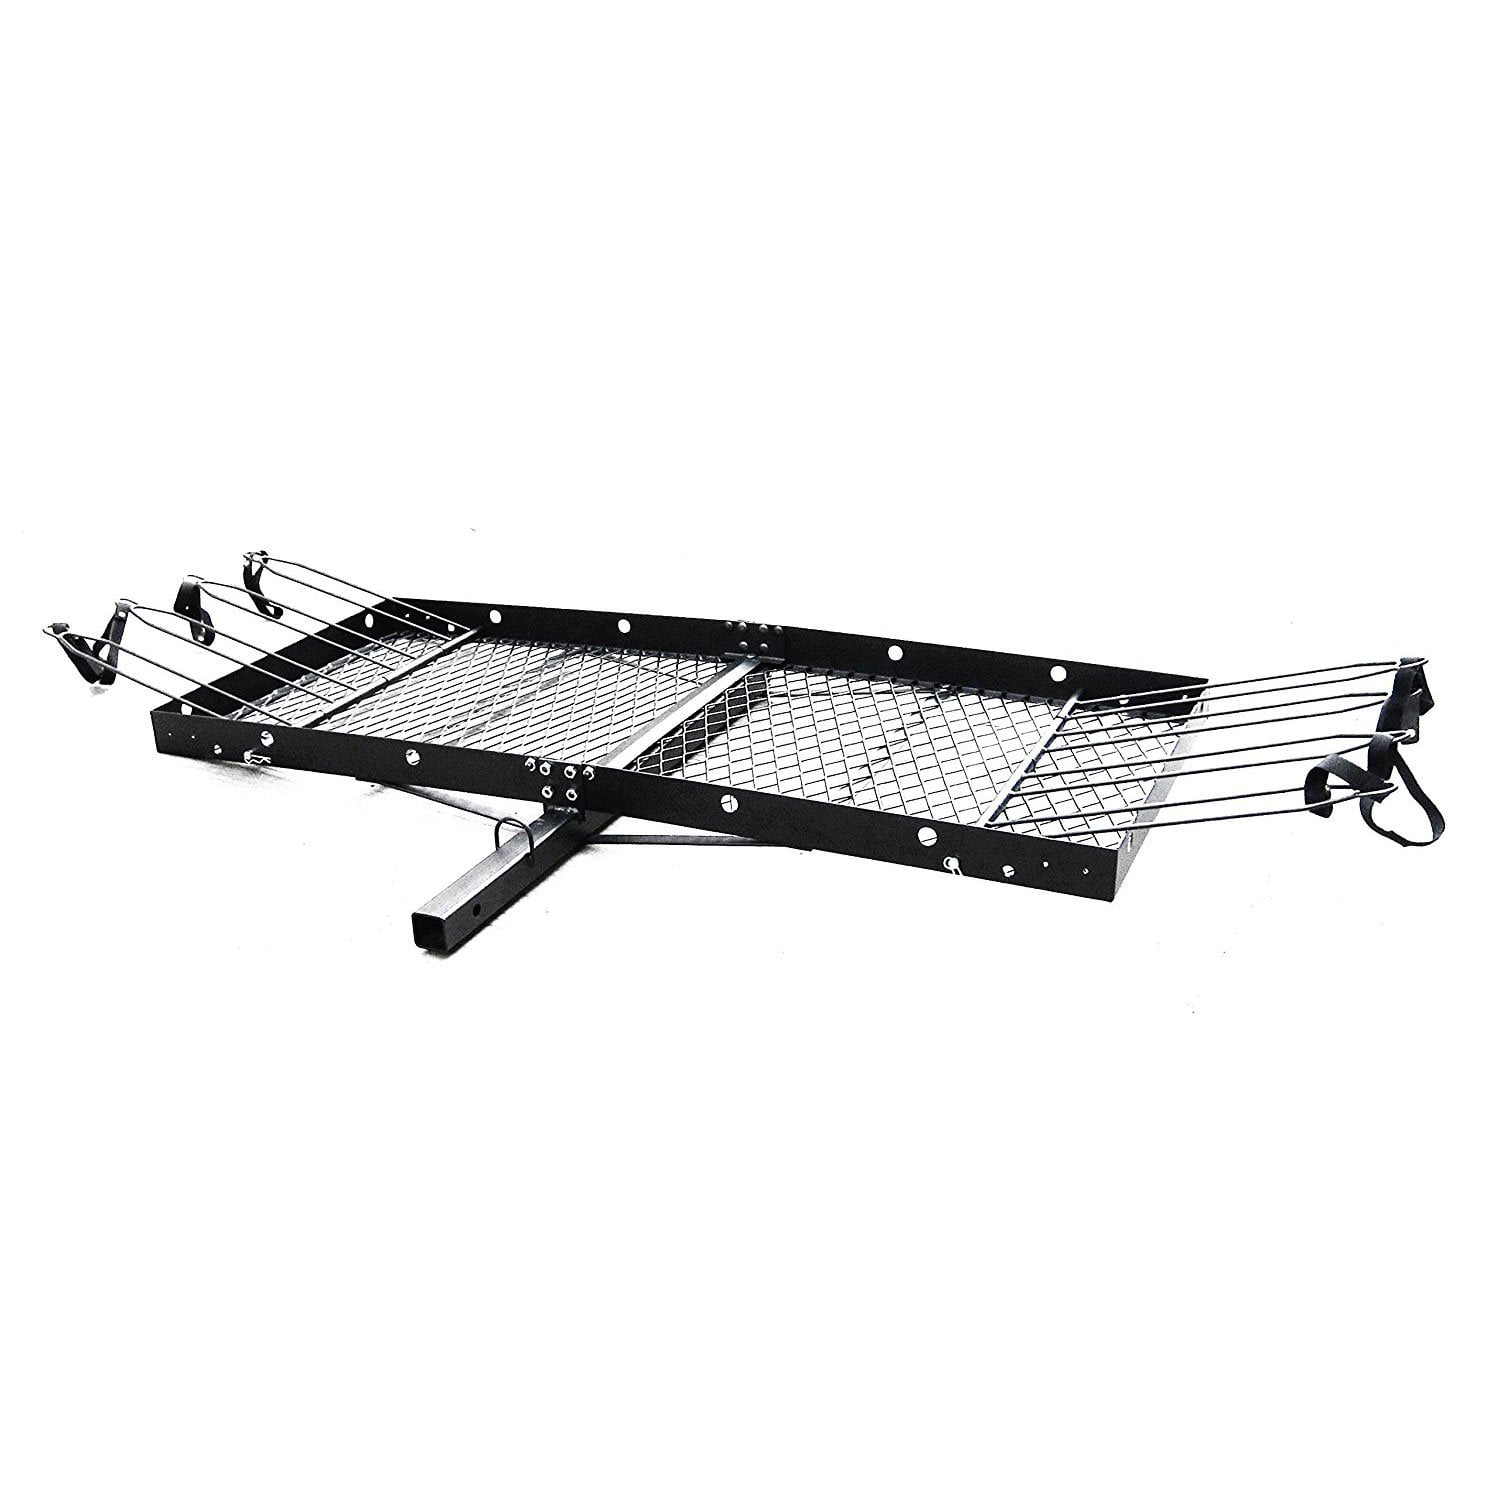 Tow Tuff 62 Inch Steel Cargo Carrier Trailer for Car or Truck with Bike Rack by Tow Tuff